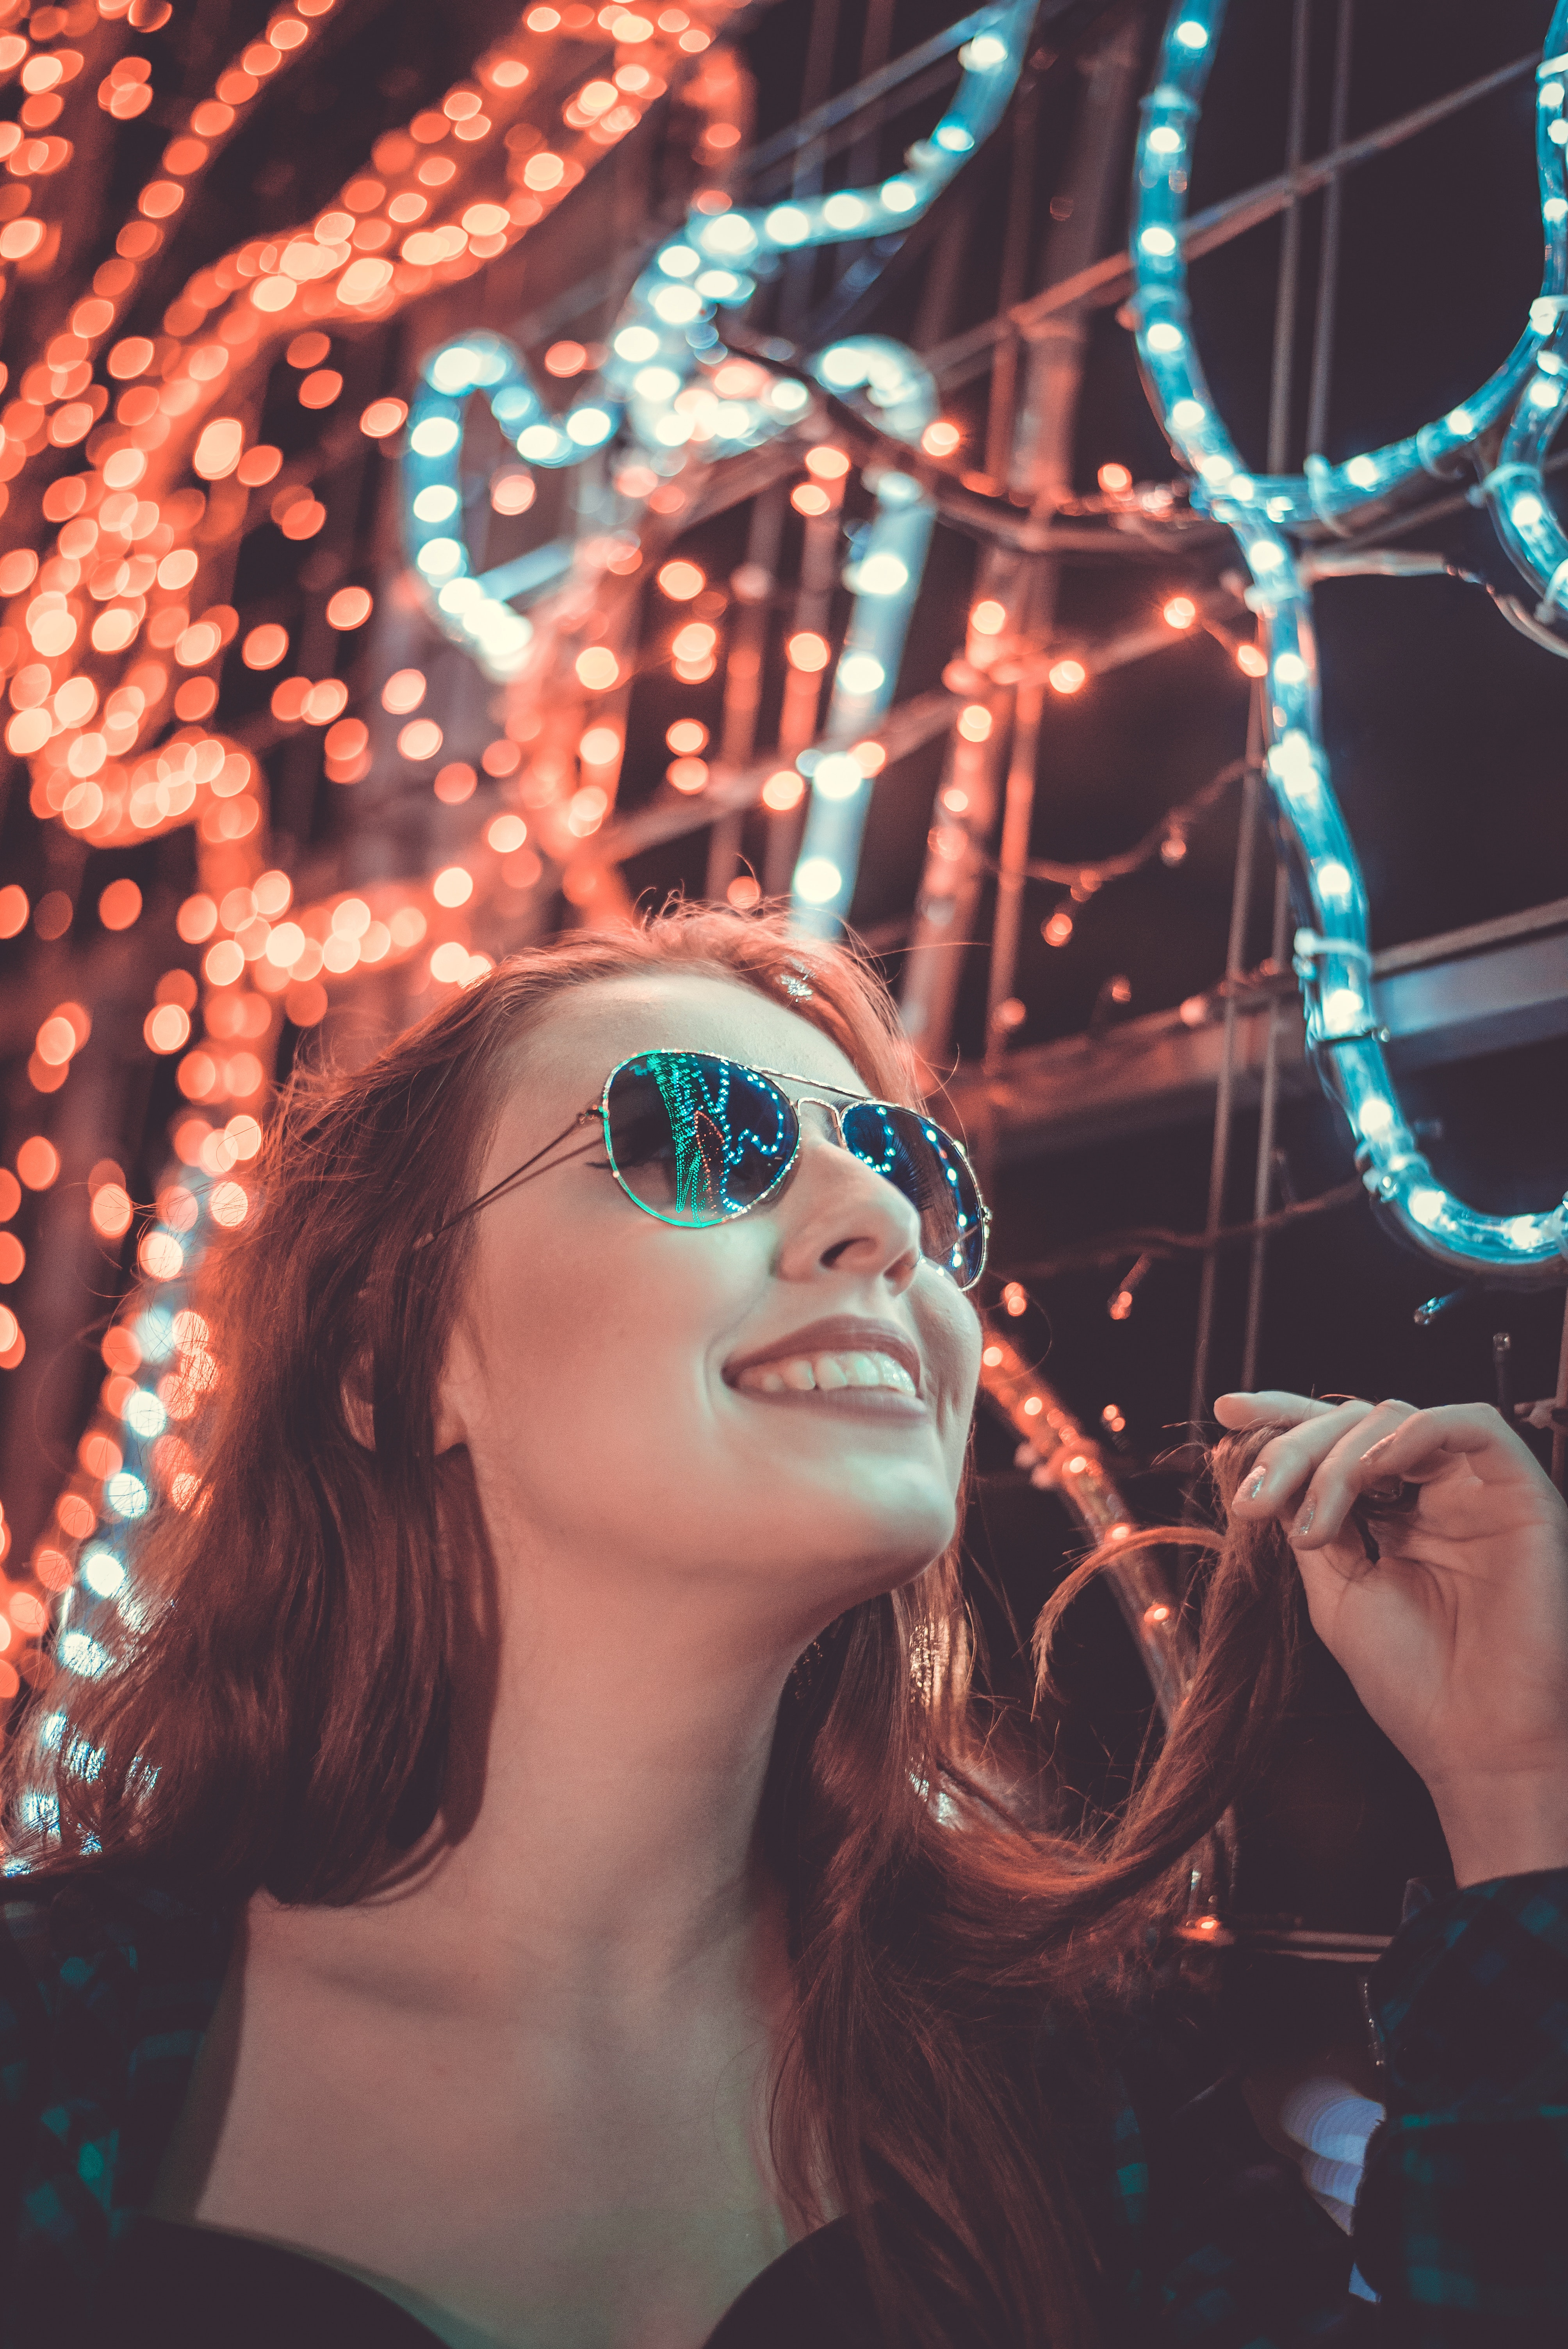 Woman wearing sunglasses holding her hair photo